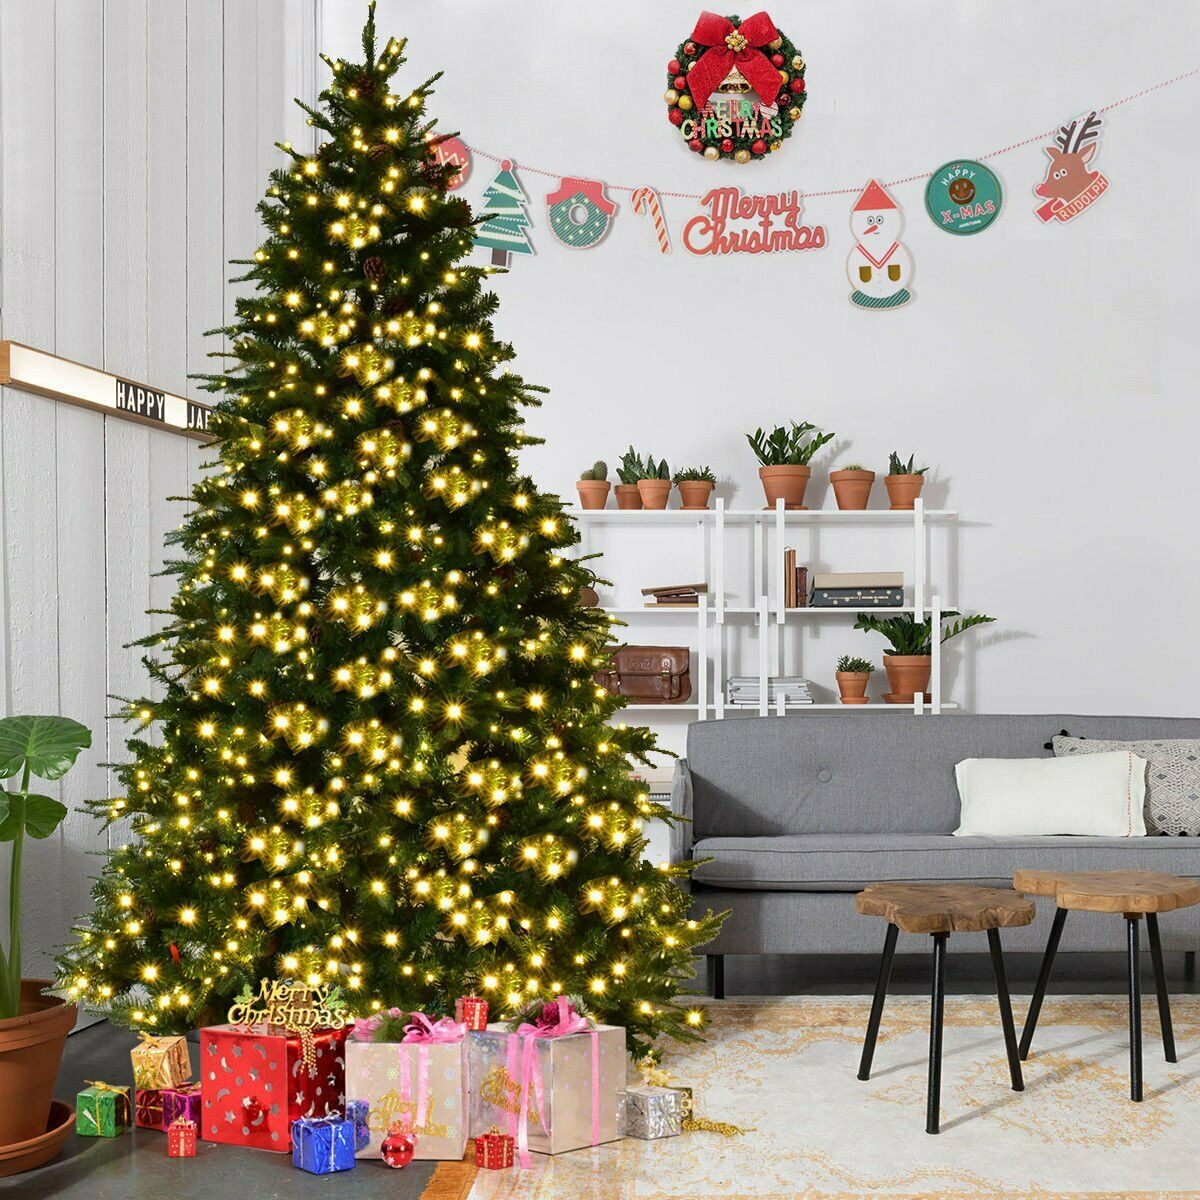 Details About 7ft Pre Lit Bushy Christmas Trees 100 Led Lights Warm White Xmas Indoor Outdoor